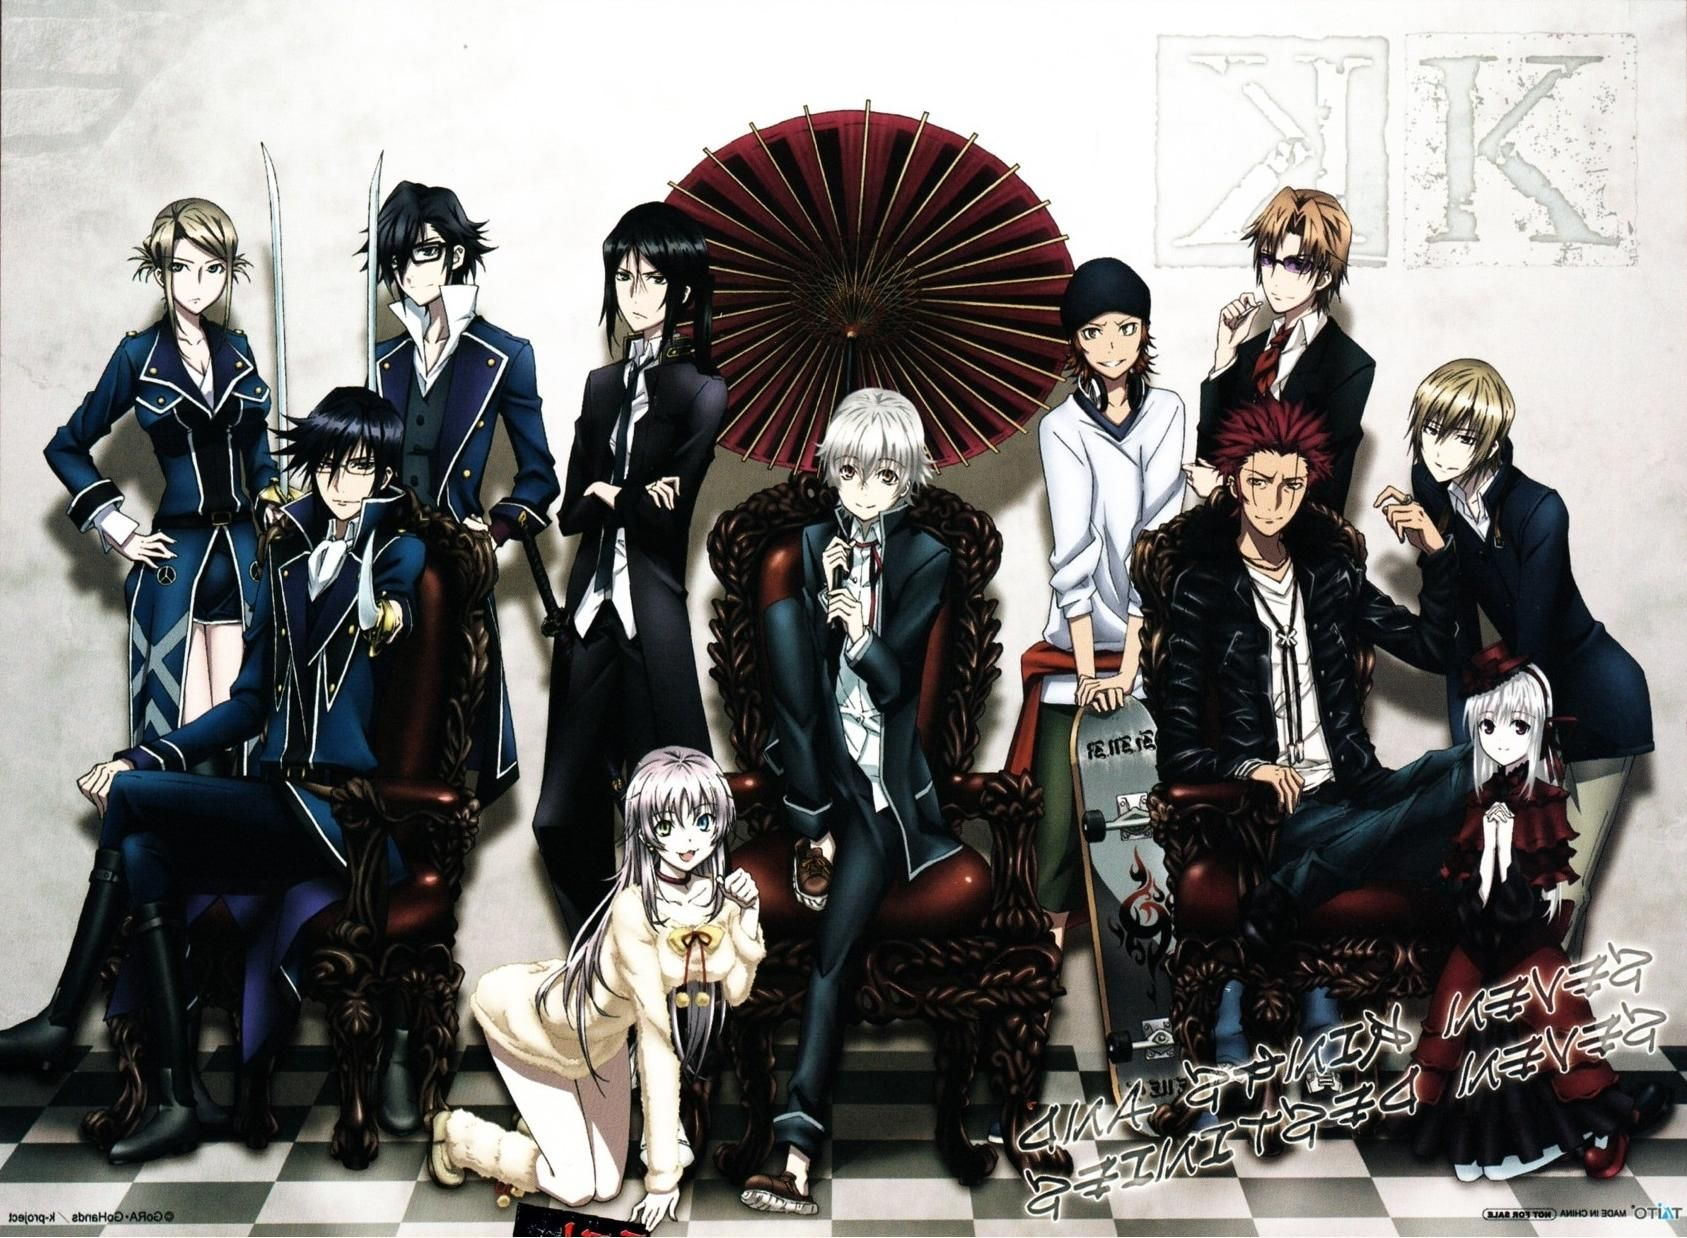 f4179b66481b9a2868636368984db036.jpg (1687×1238) | K project anime ...